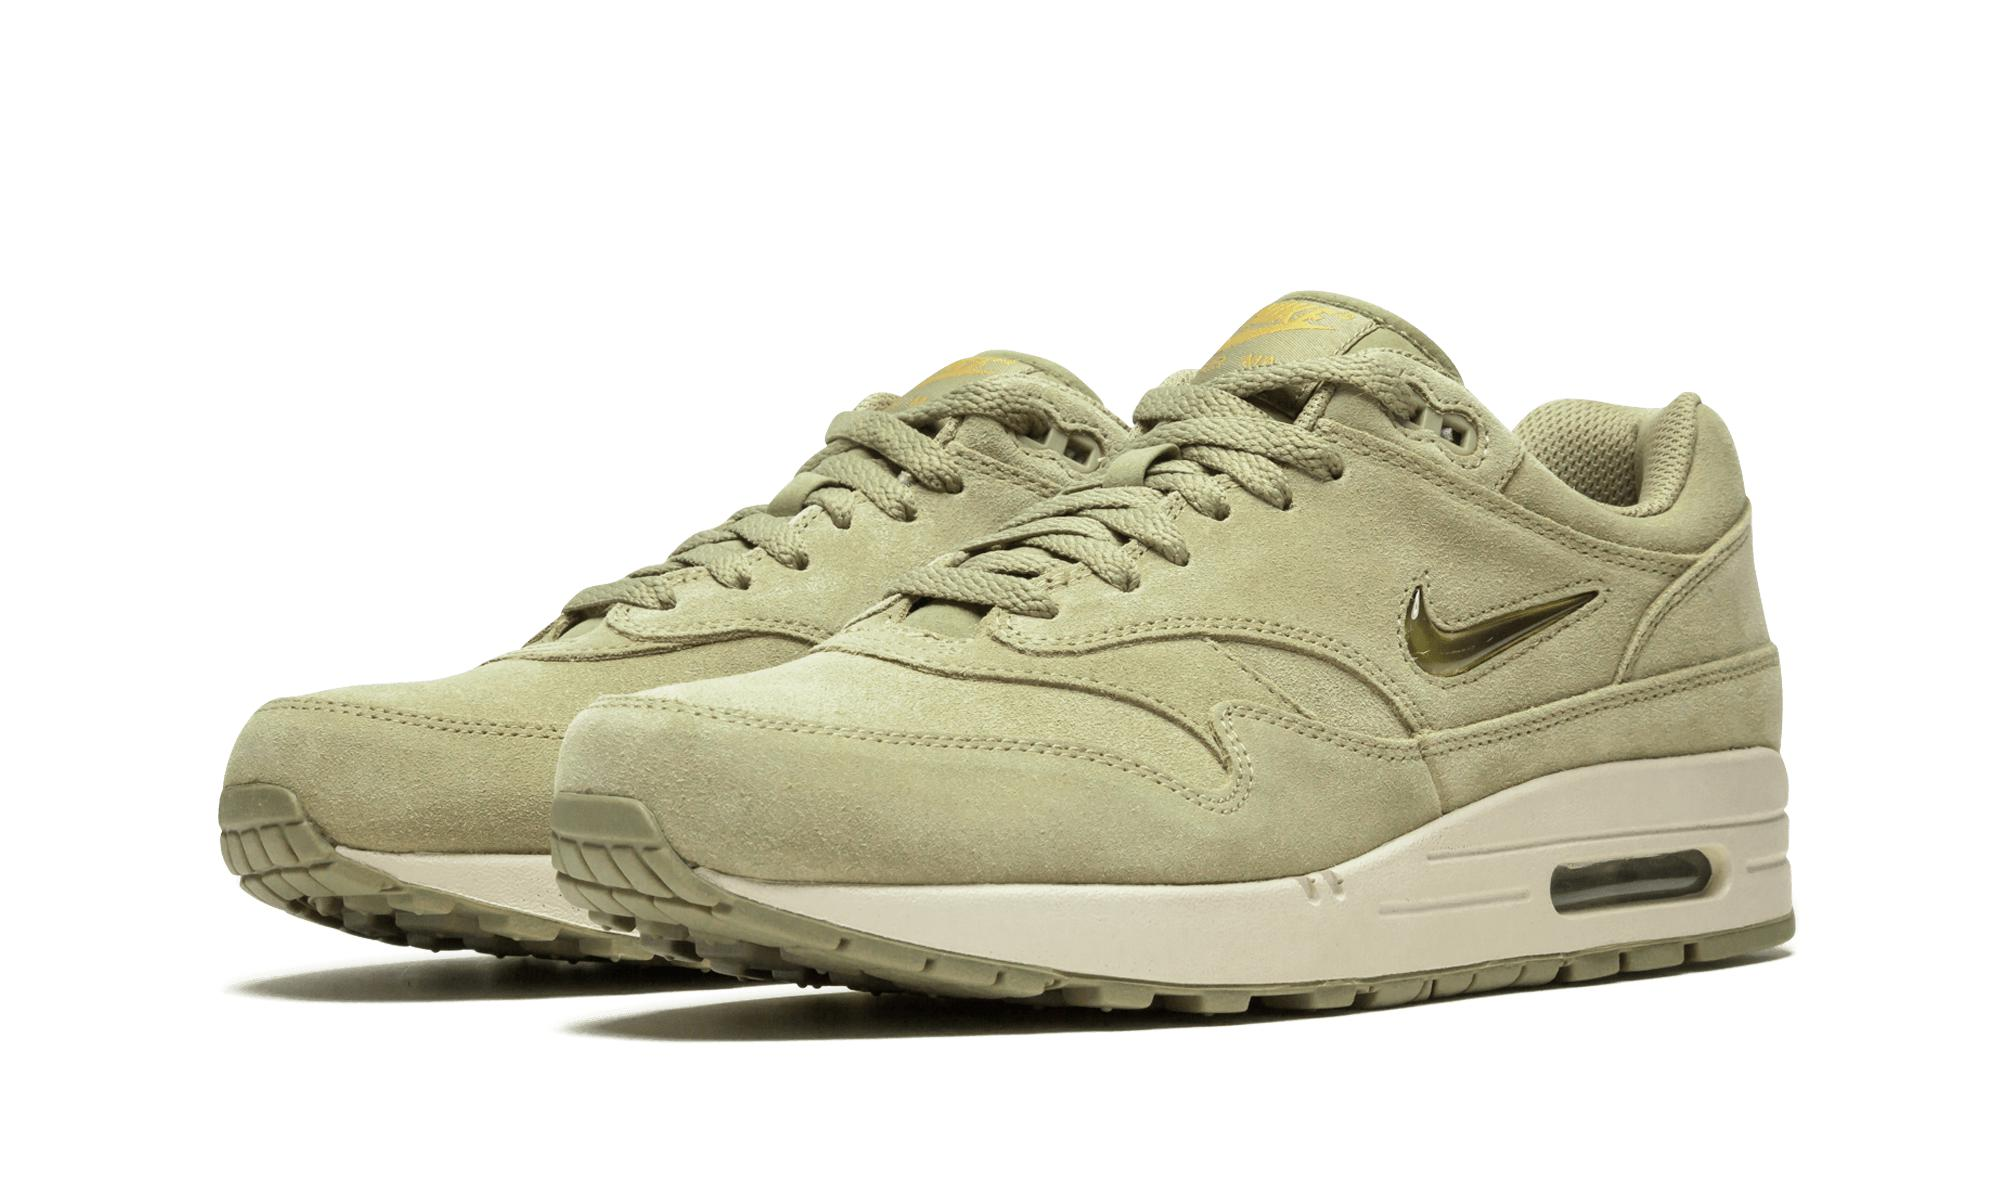 pretty nice 868d9 d5516 Nike Air Max 1 Premium Sc in Green for Men - Save 12% - Lyst